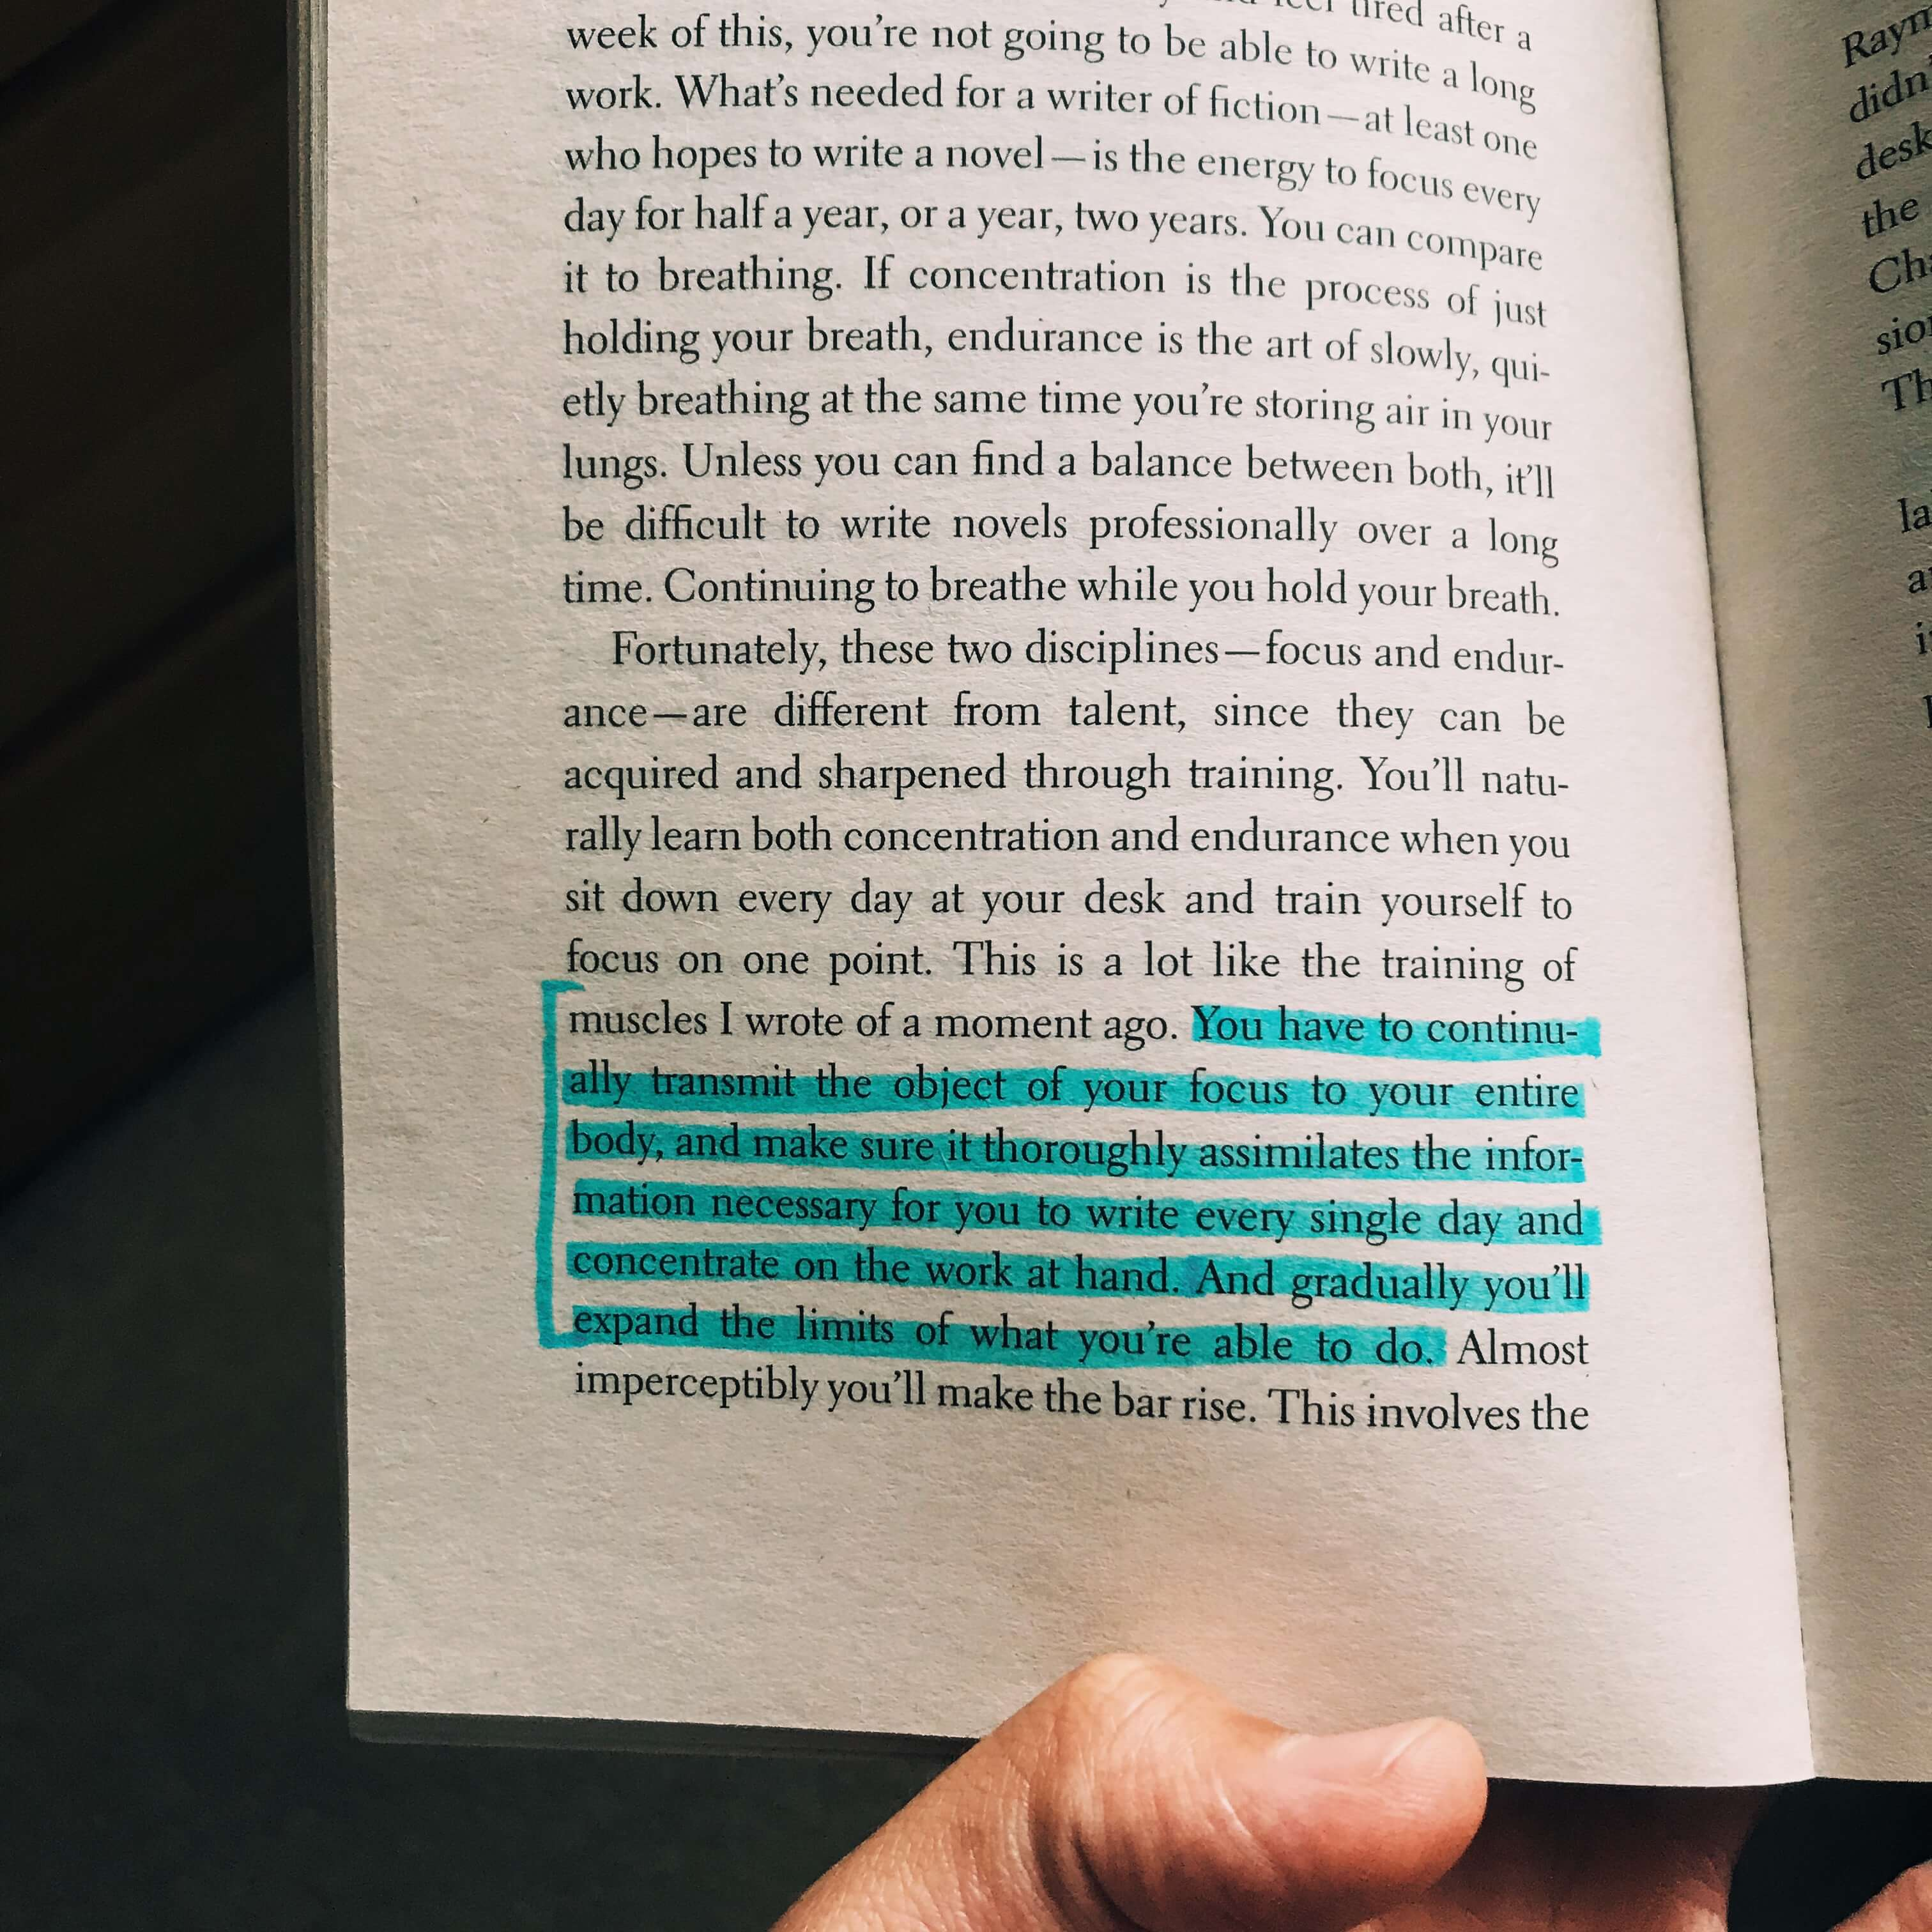 book, highlighted, hand